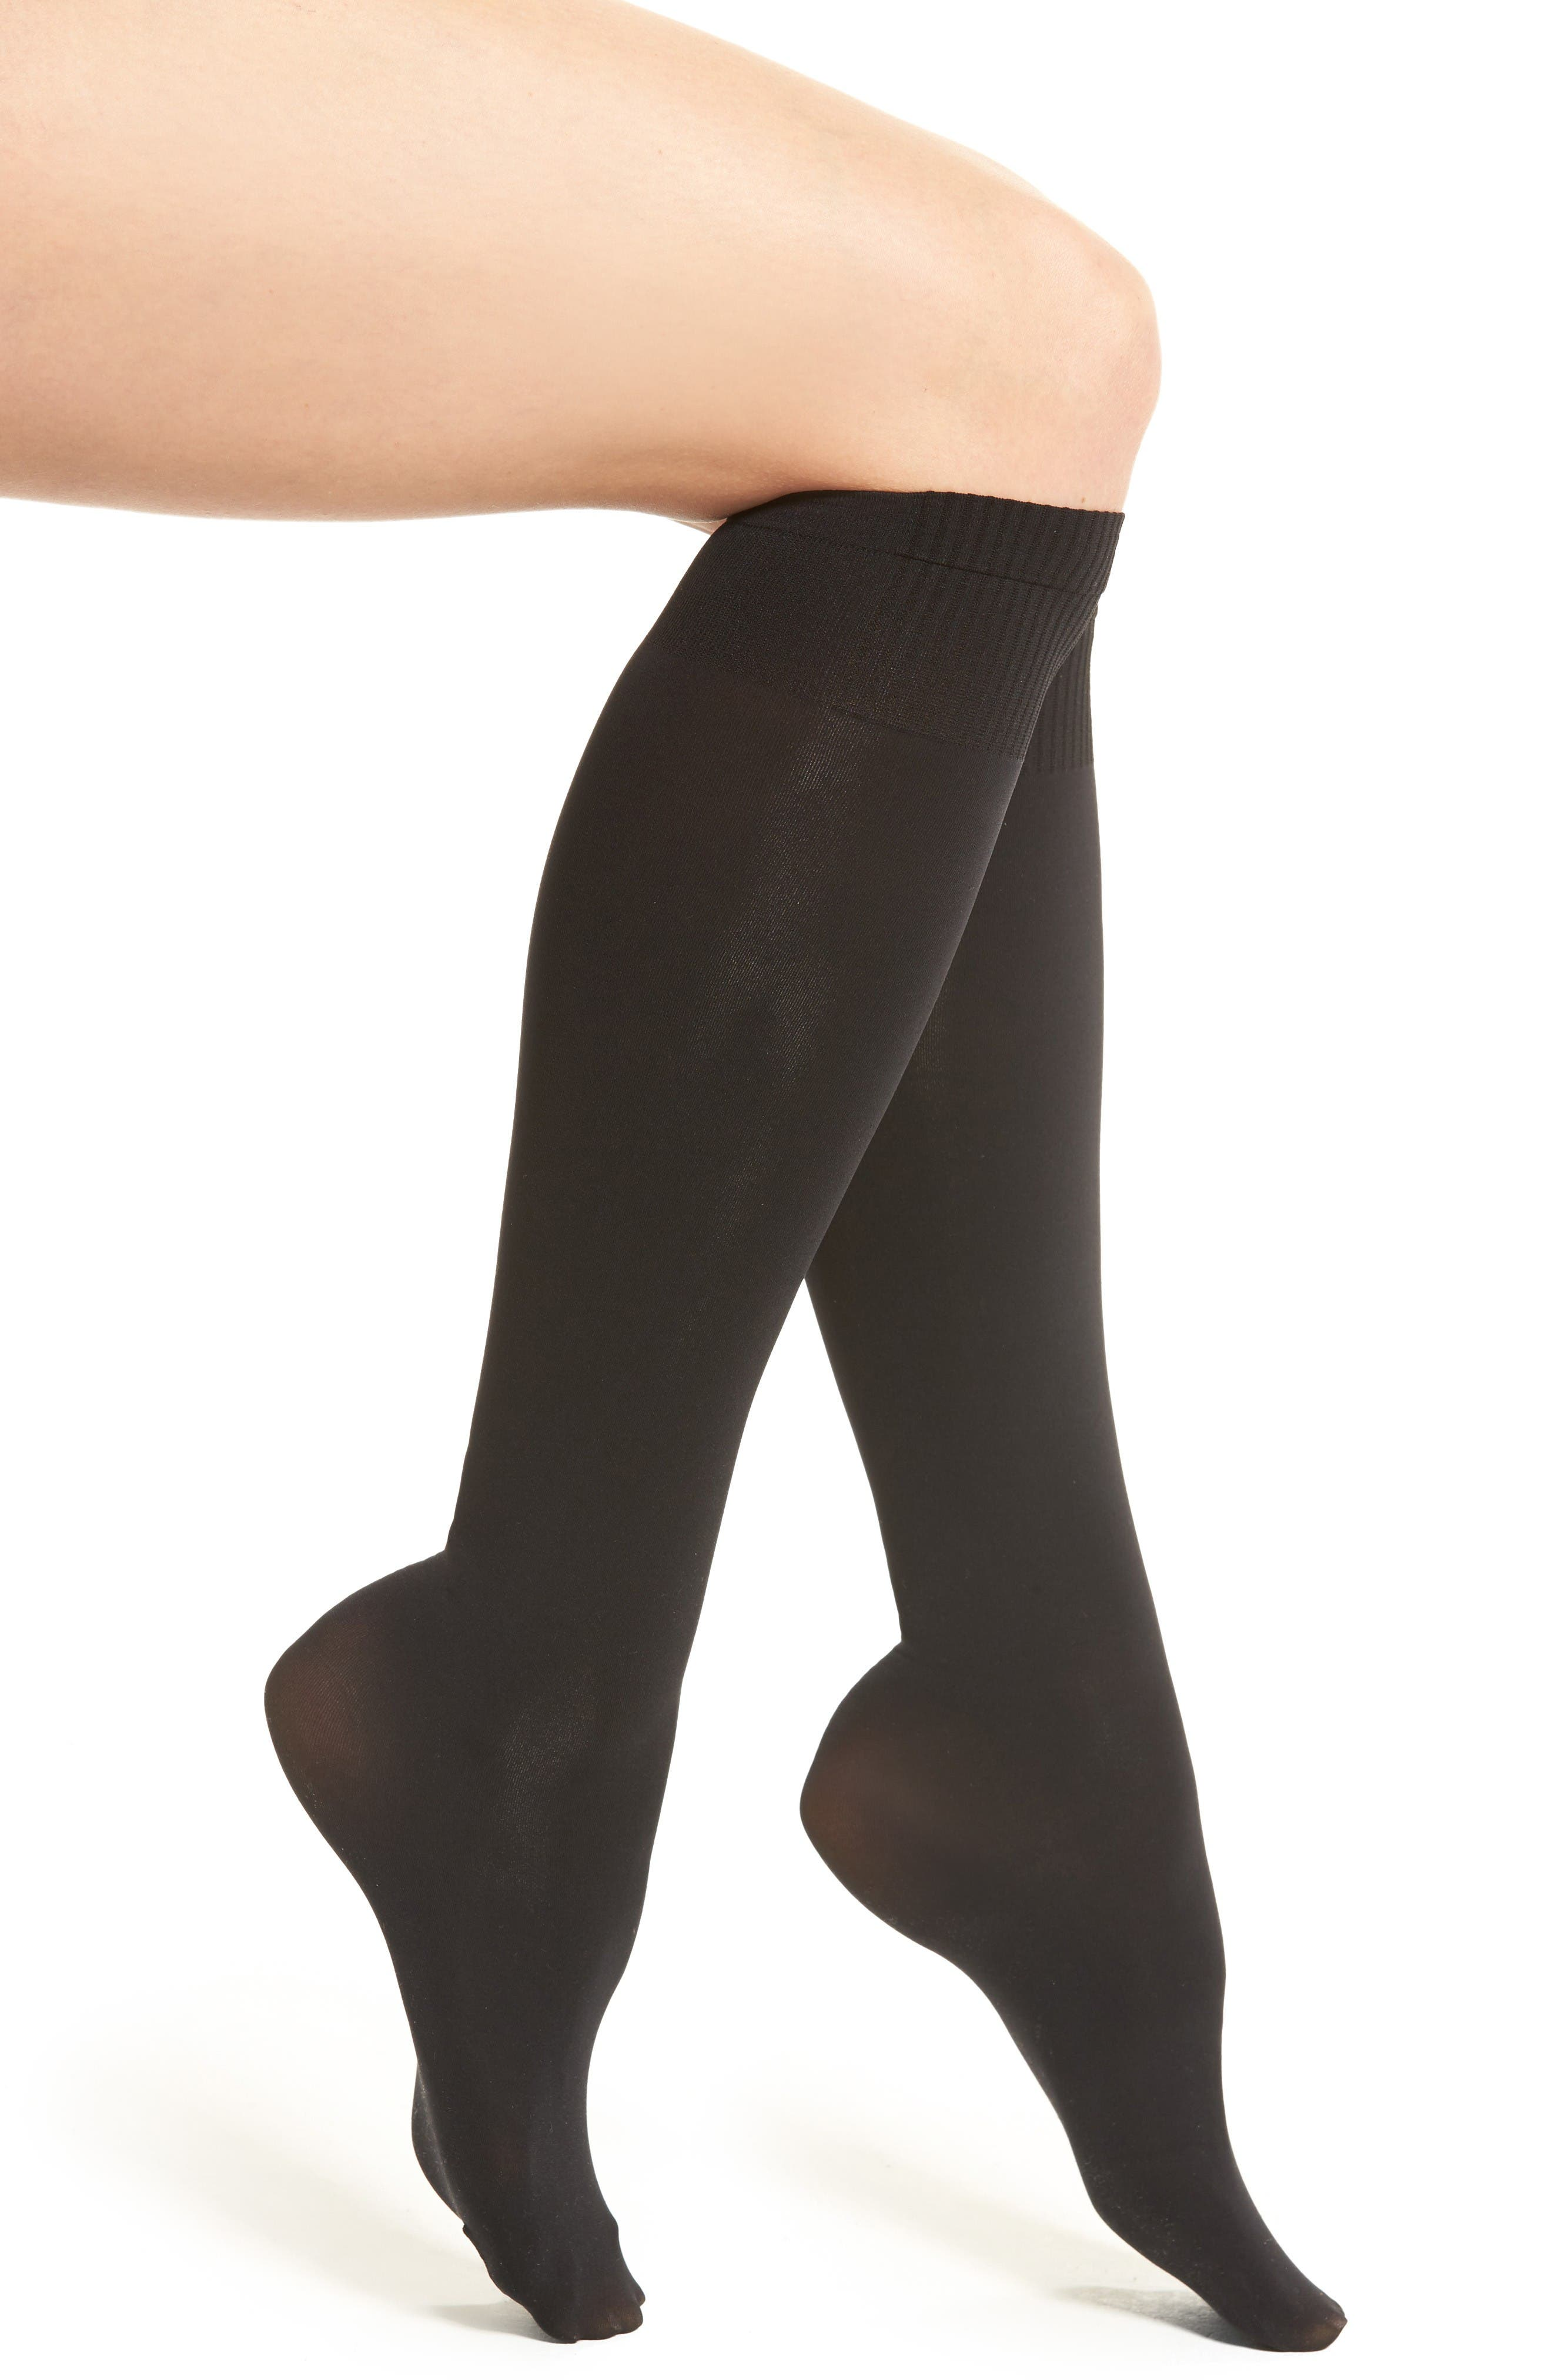 Main Image - DKNY Opaque Knee High Socks